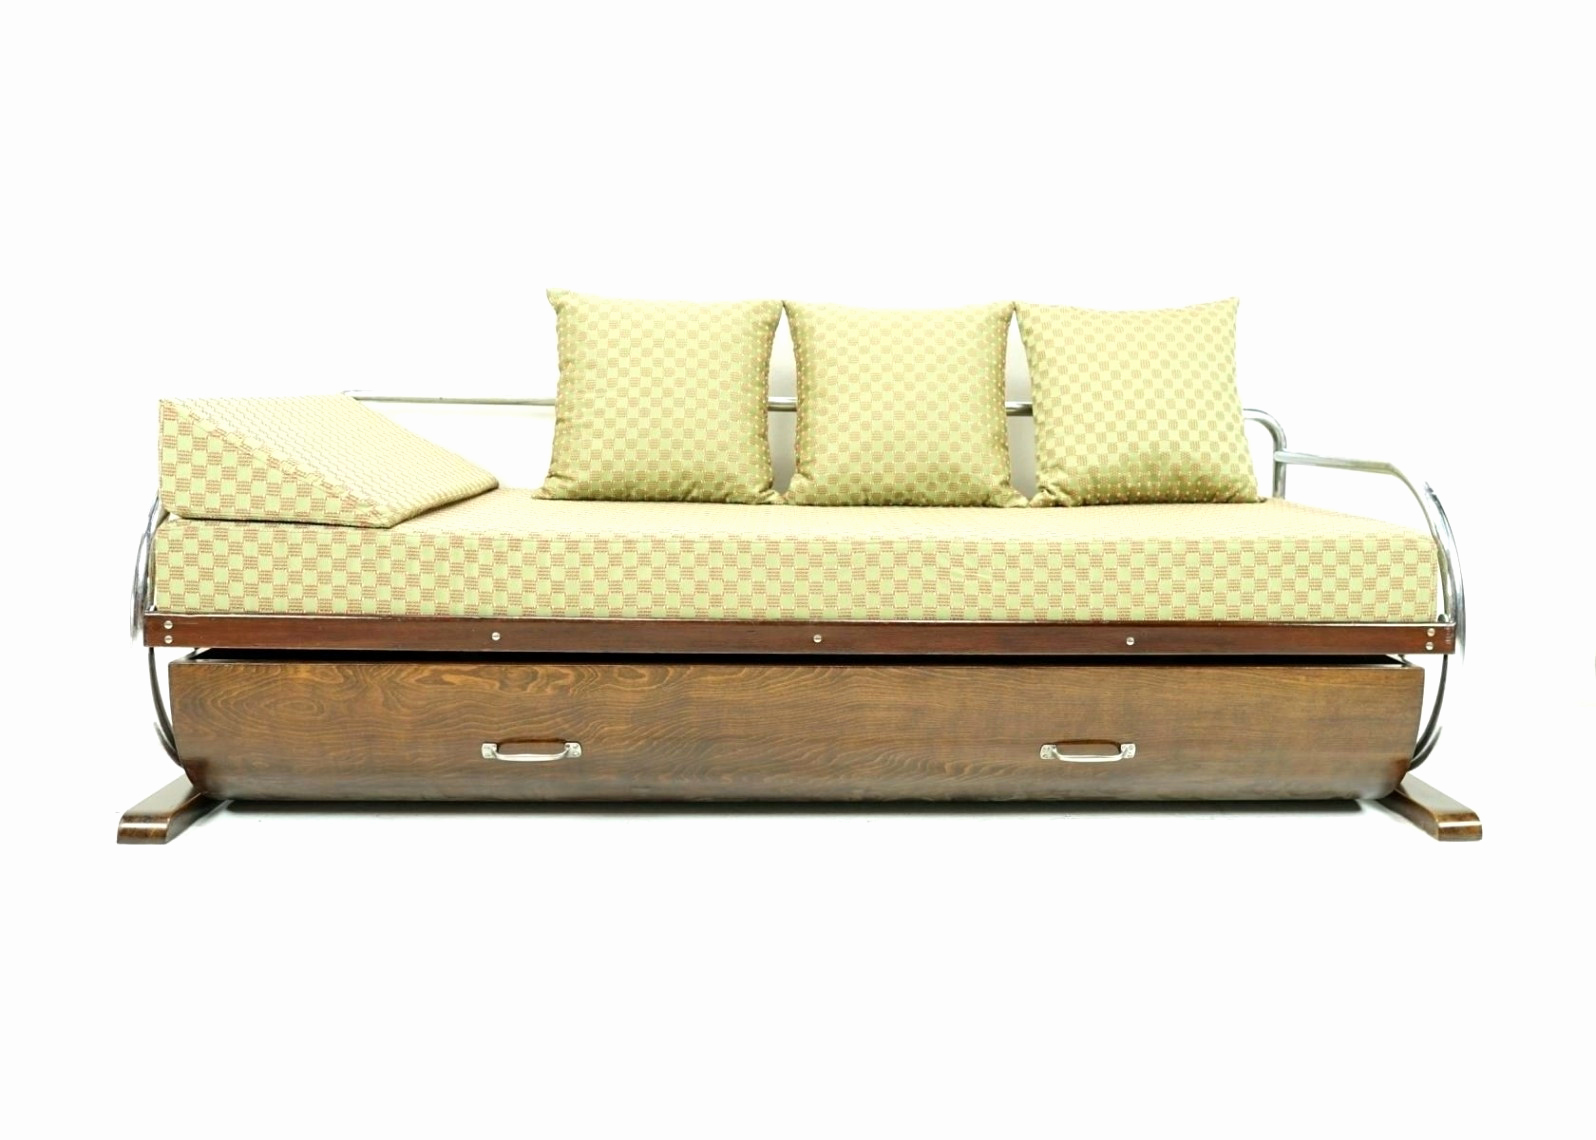 Rolf Benz Schlafsofa Inspirierend sofa Rolf Benz Luxus Rolf Benz sofa Fantastisch sofa Table Fresh